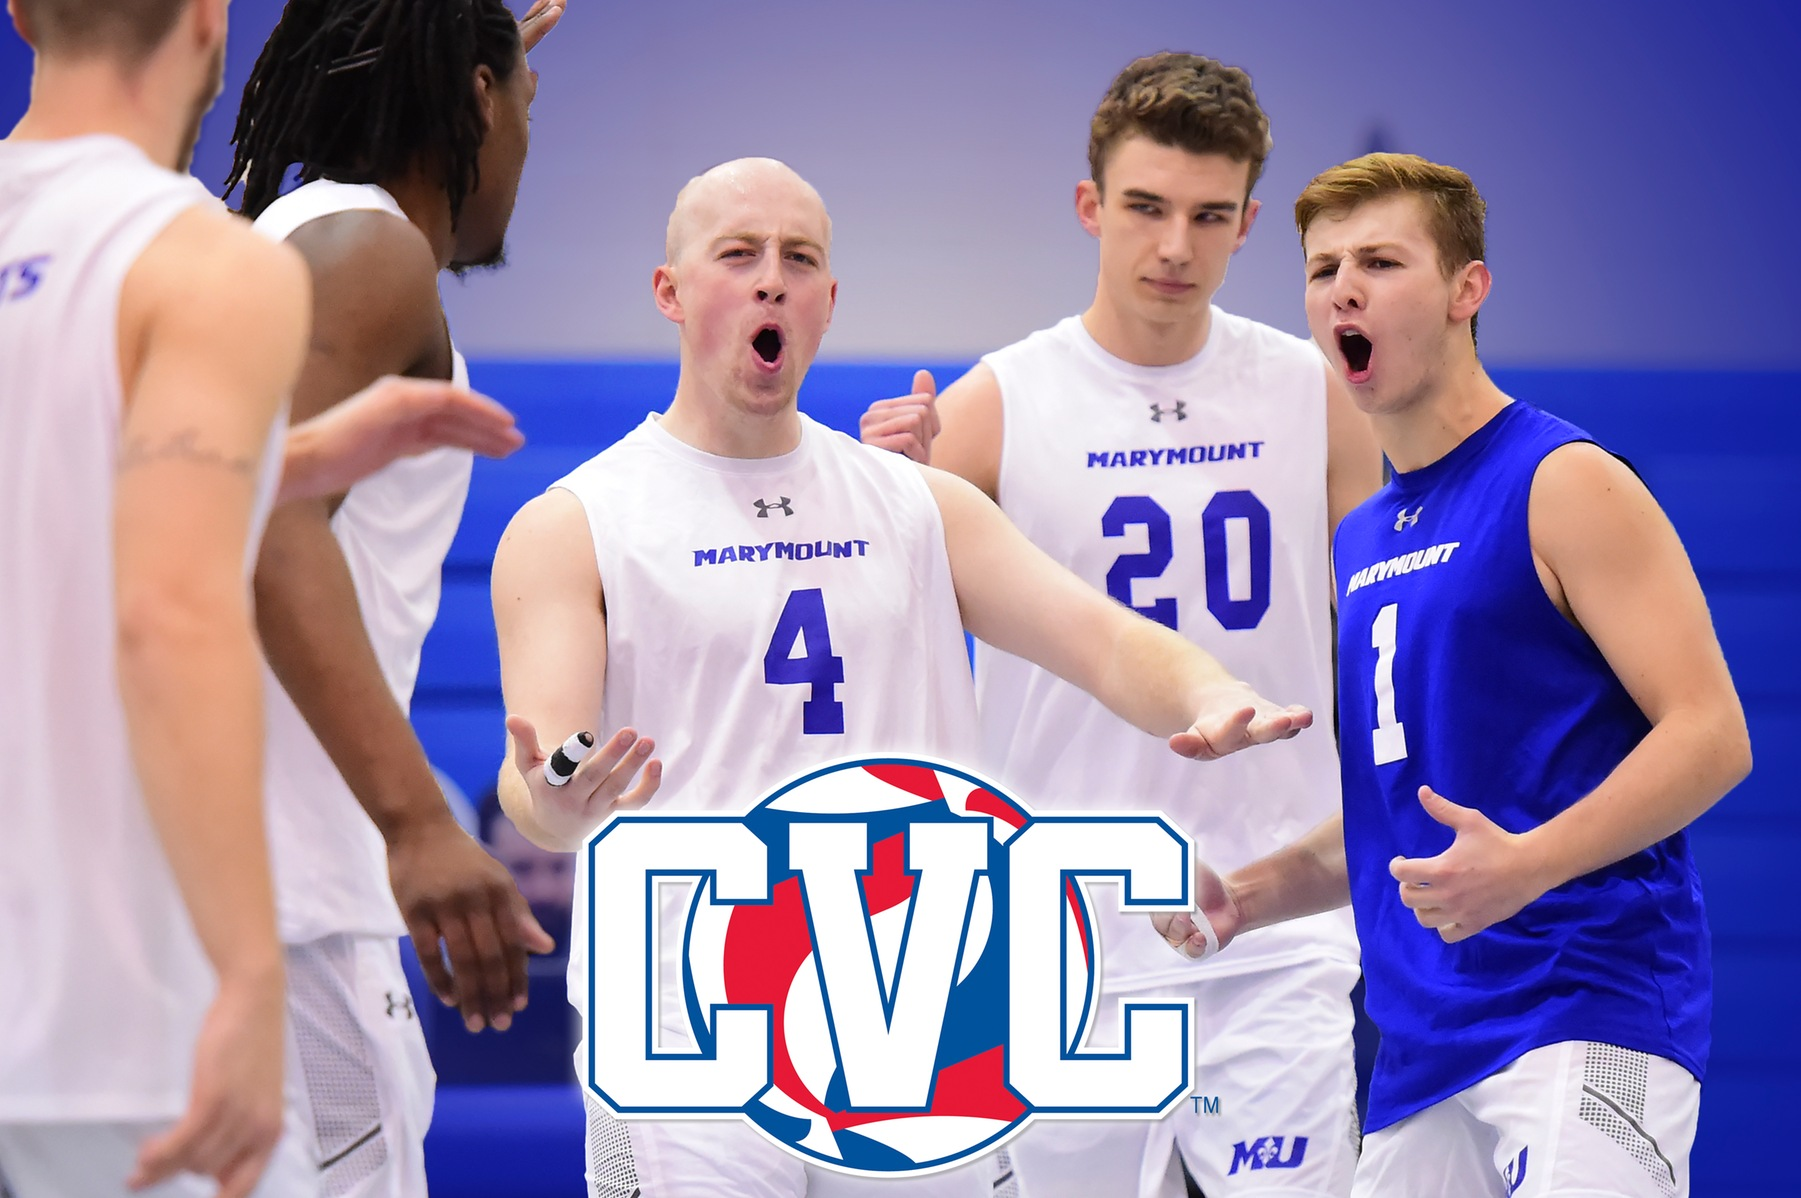 PREVIEW: Men's volleyball set for CVC first-round matchup with Scarlet Raiders